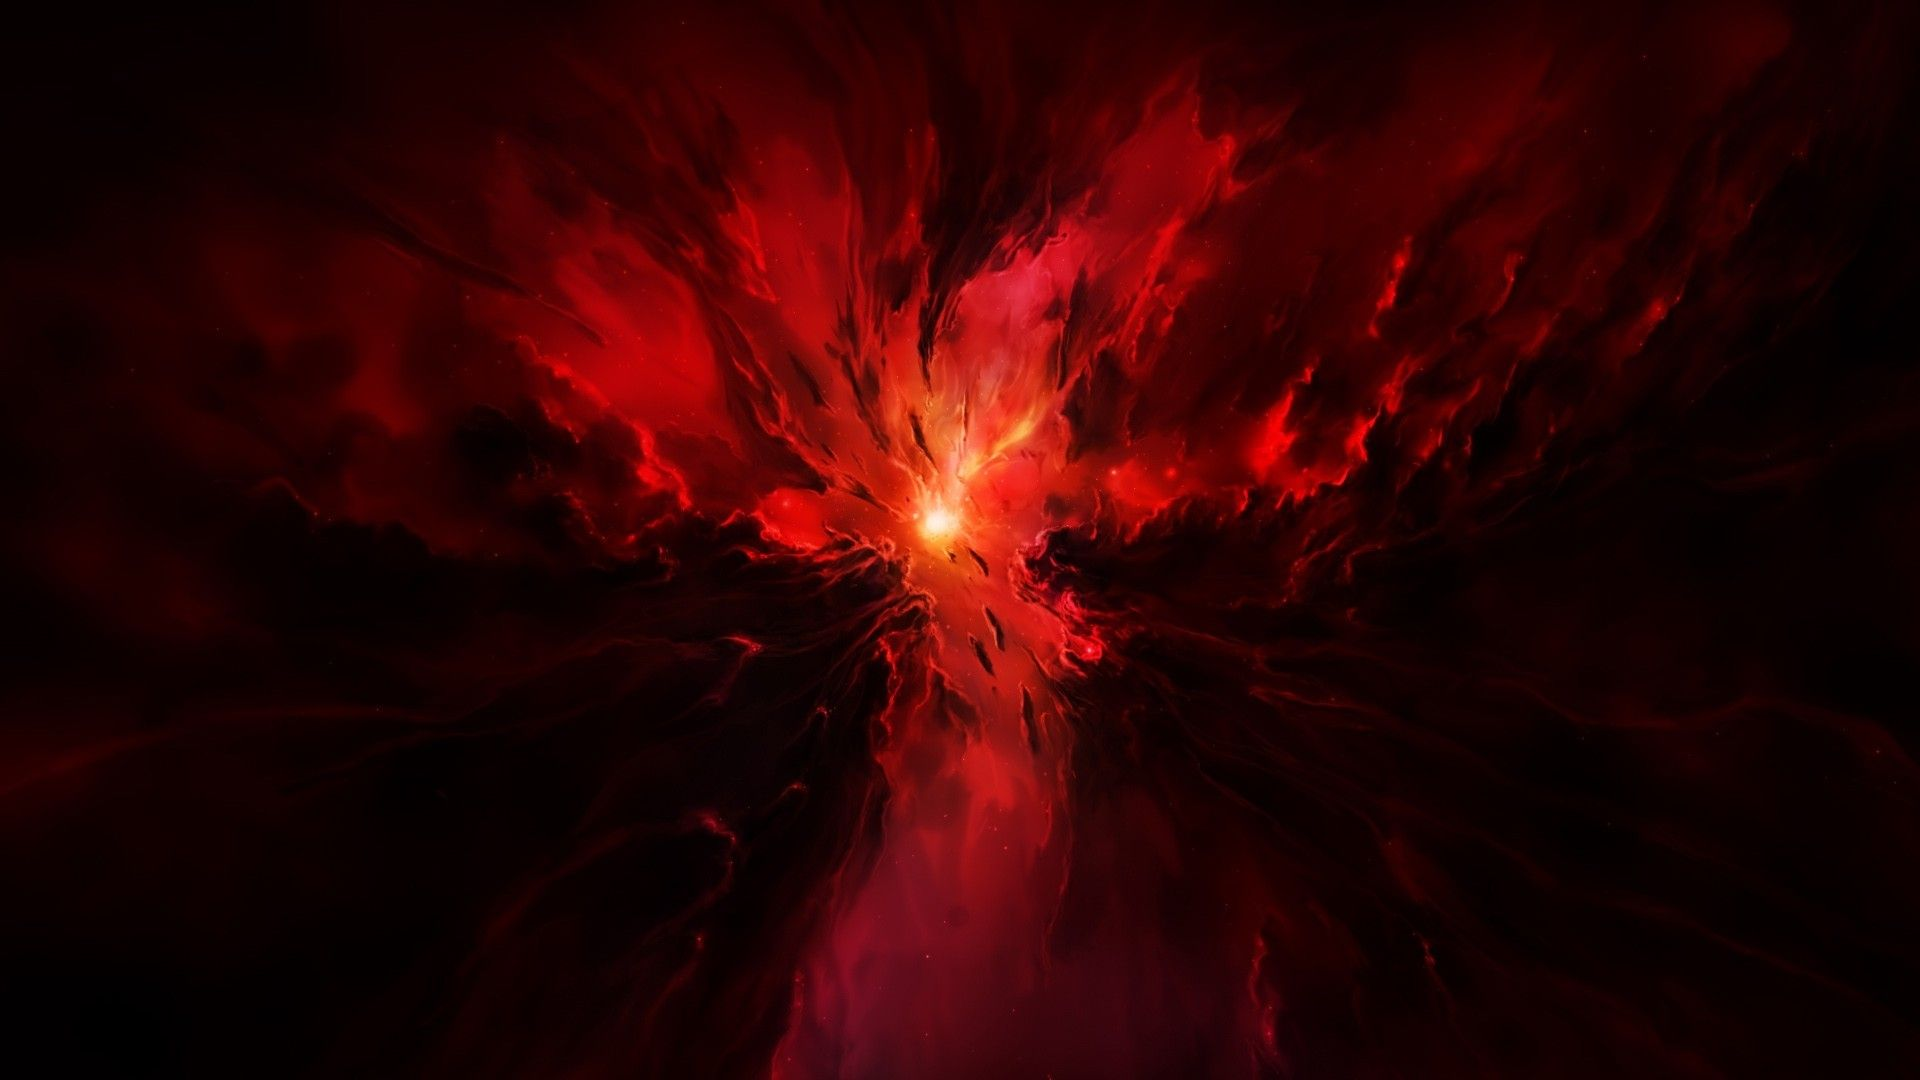 Red Space Wallpapers - Top Free Red Space Backgrounds ...